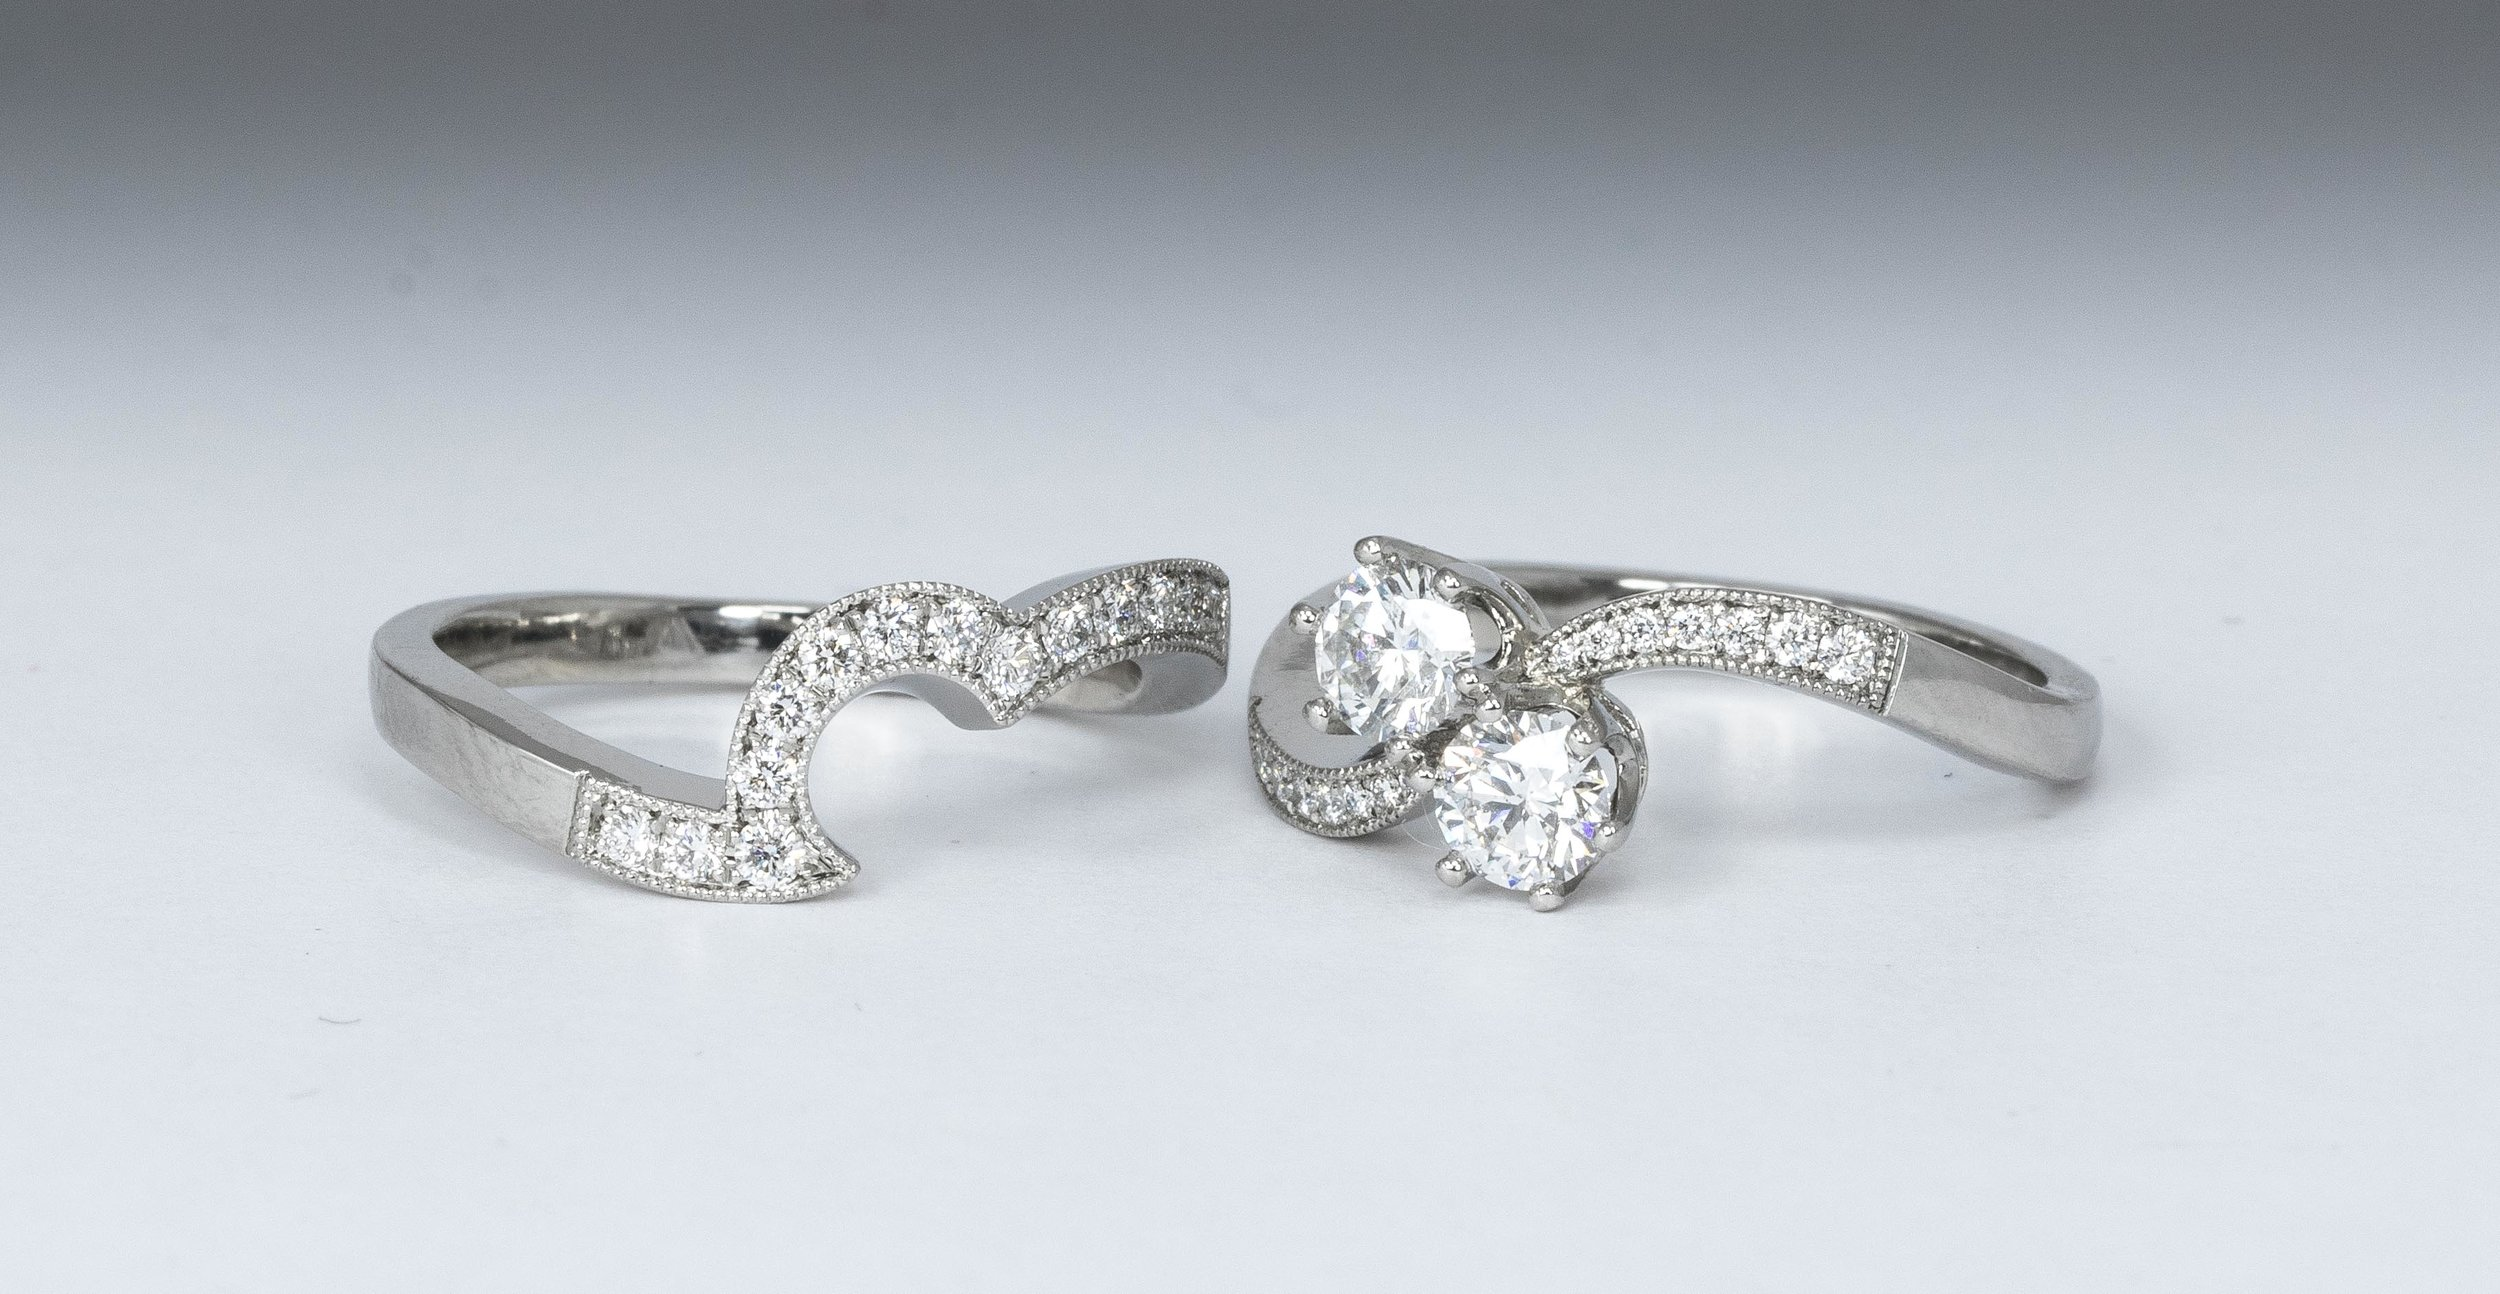 A Diamond set shaped or contour fit band, made to fit with a two stone diamond twist ring. Both from the workshops of Timothy Roe, Chichester, England.